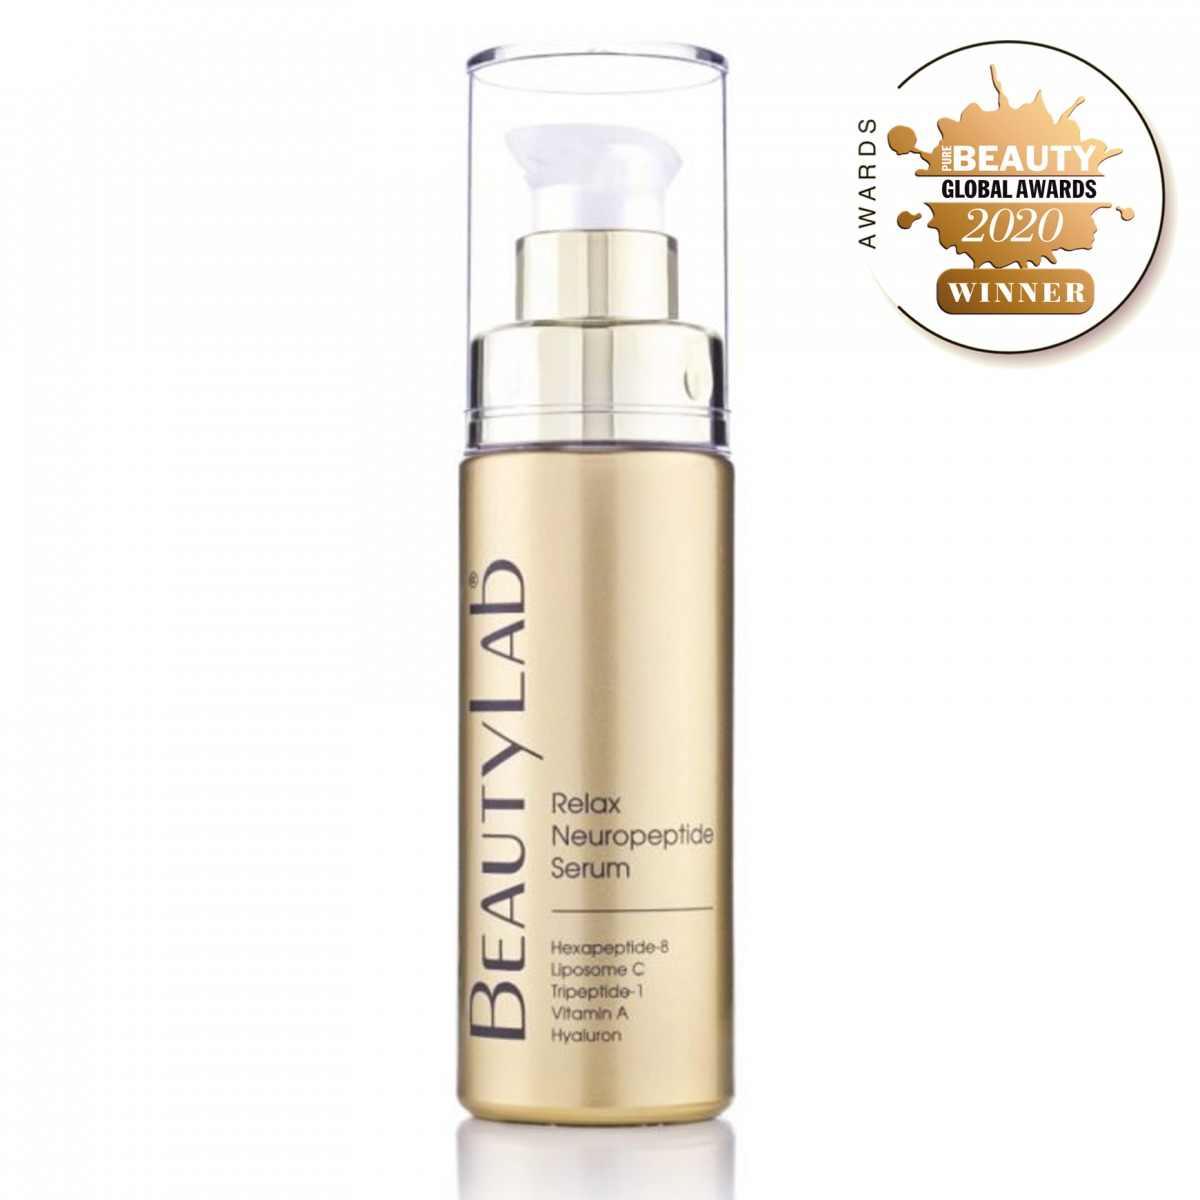 Anti-age relax serum winner